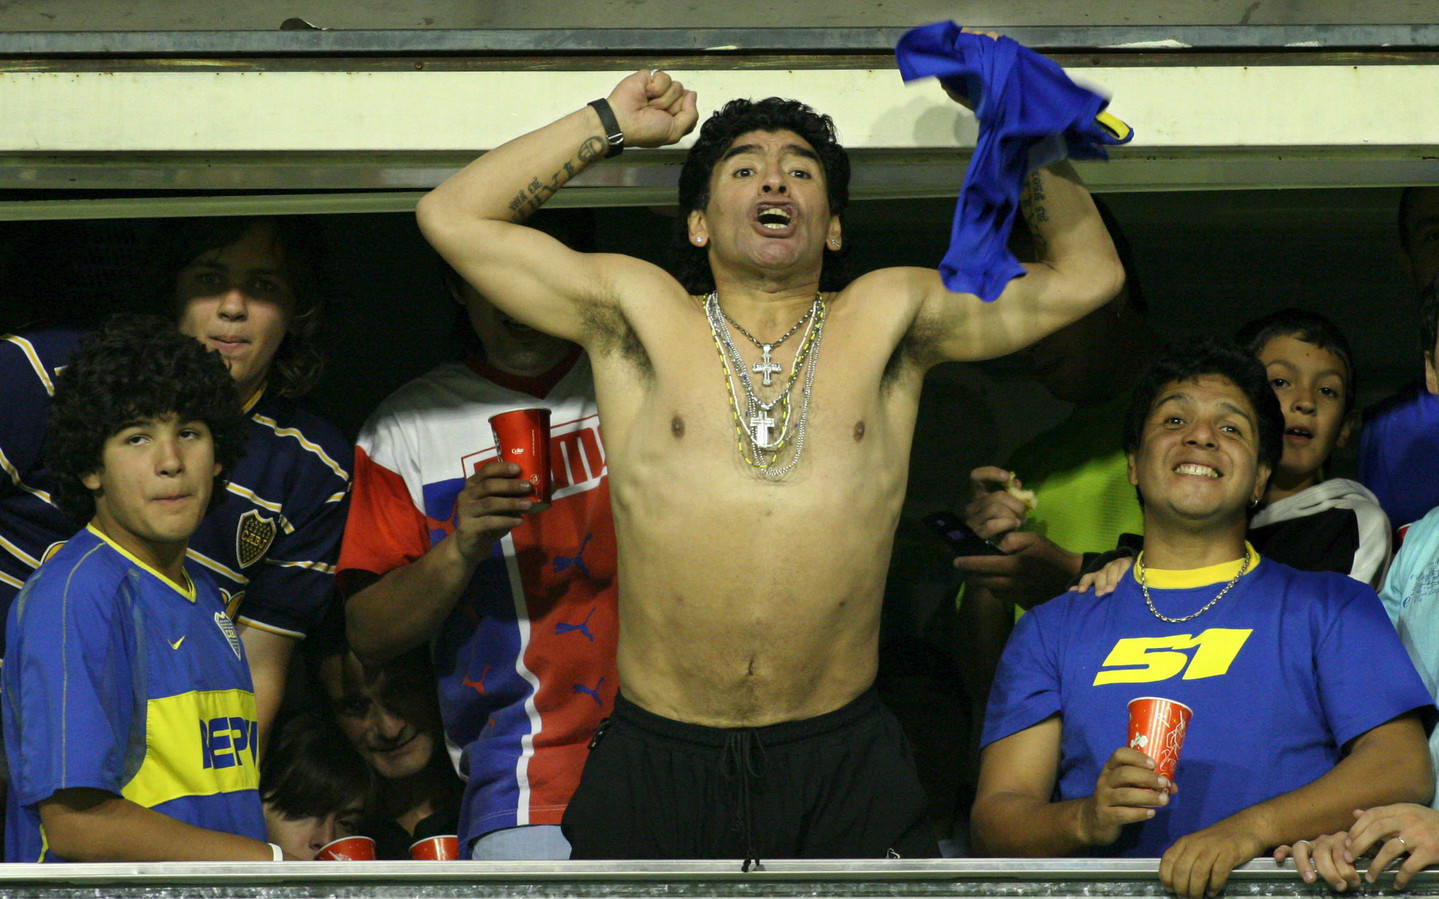 Diego Maradona in 2005 als supporter van Boca Juniors.